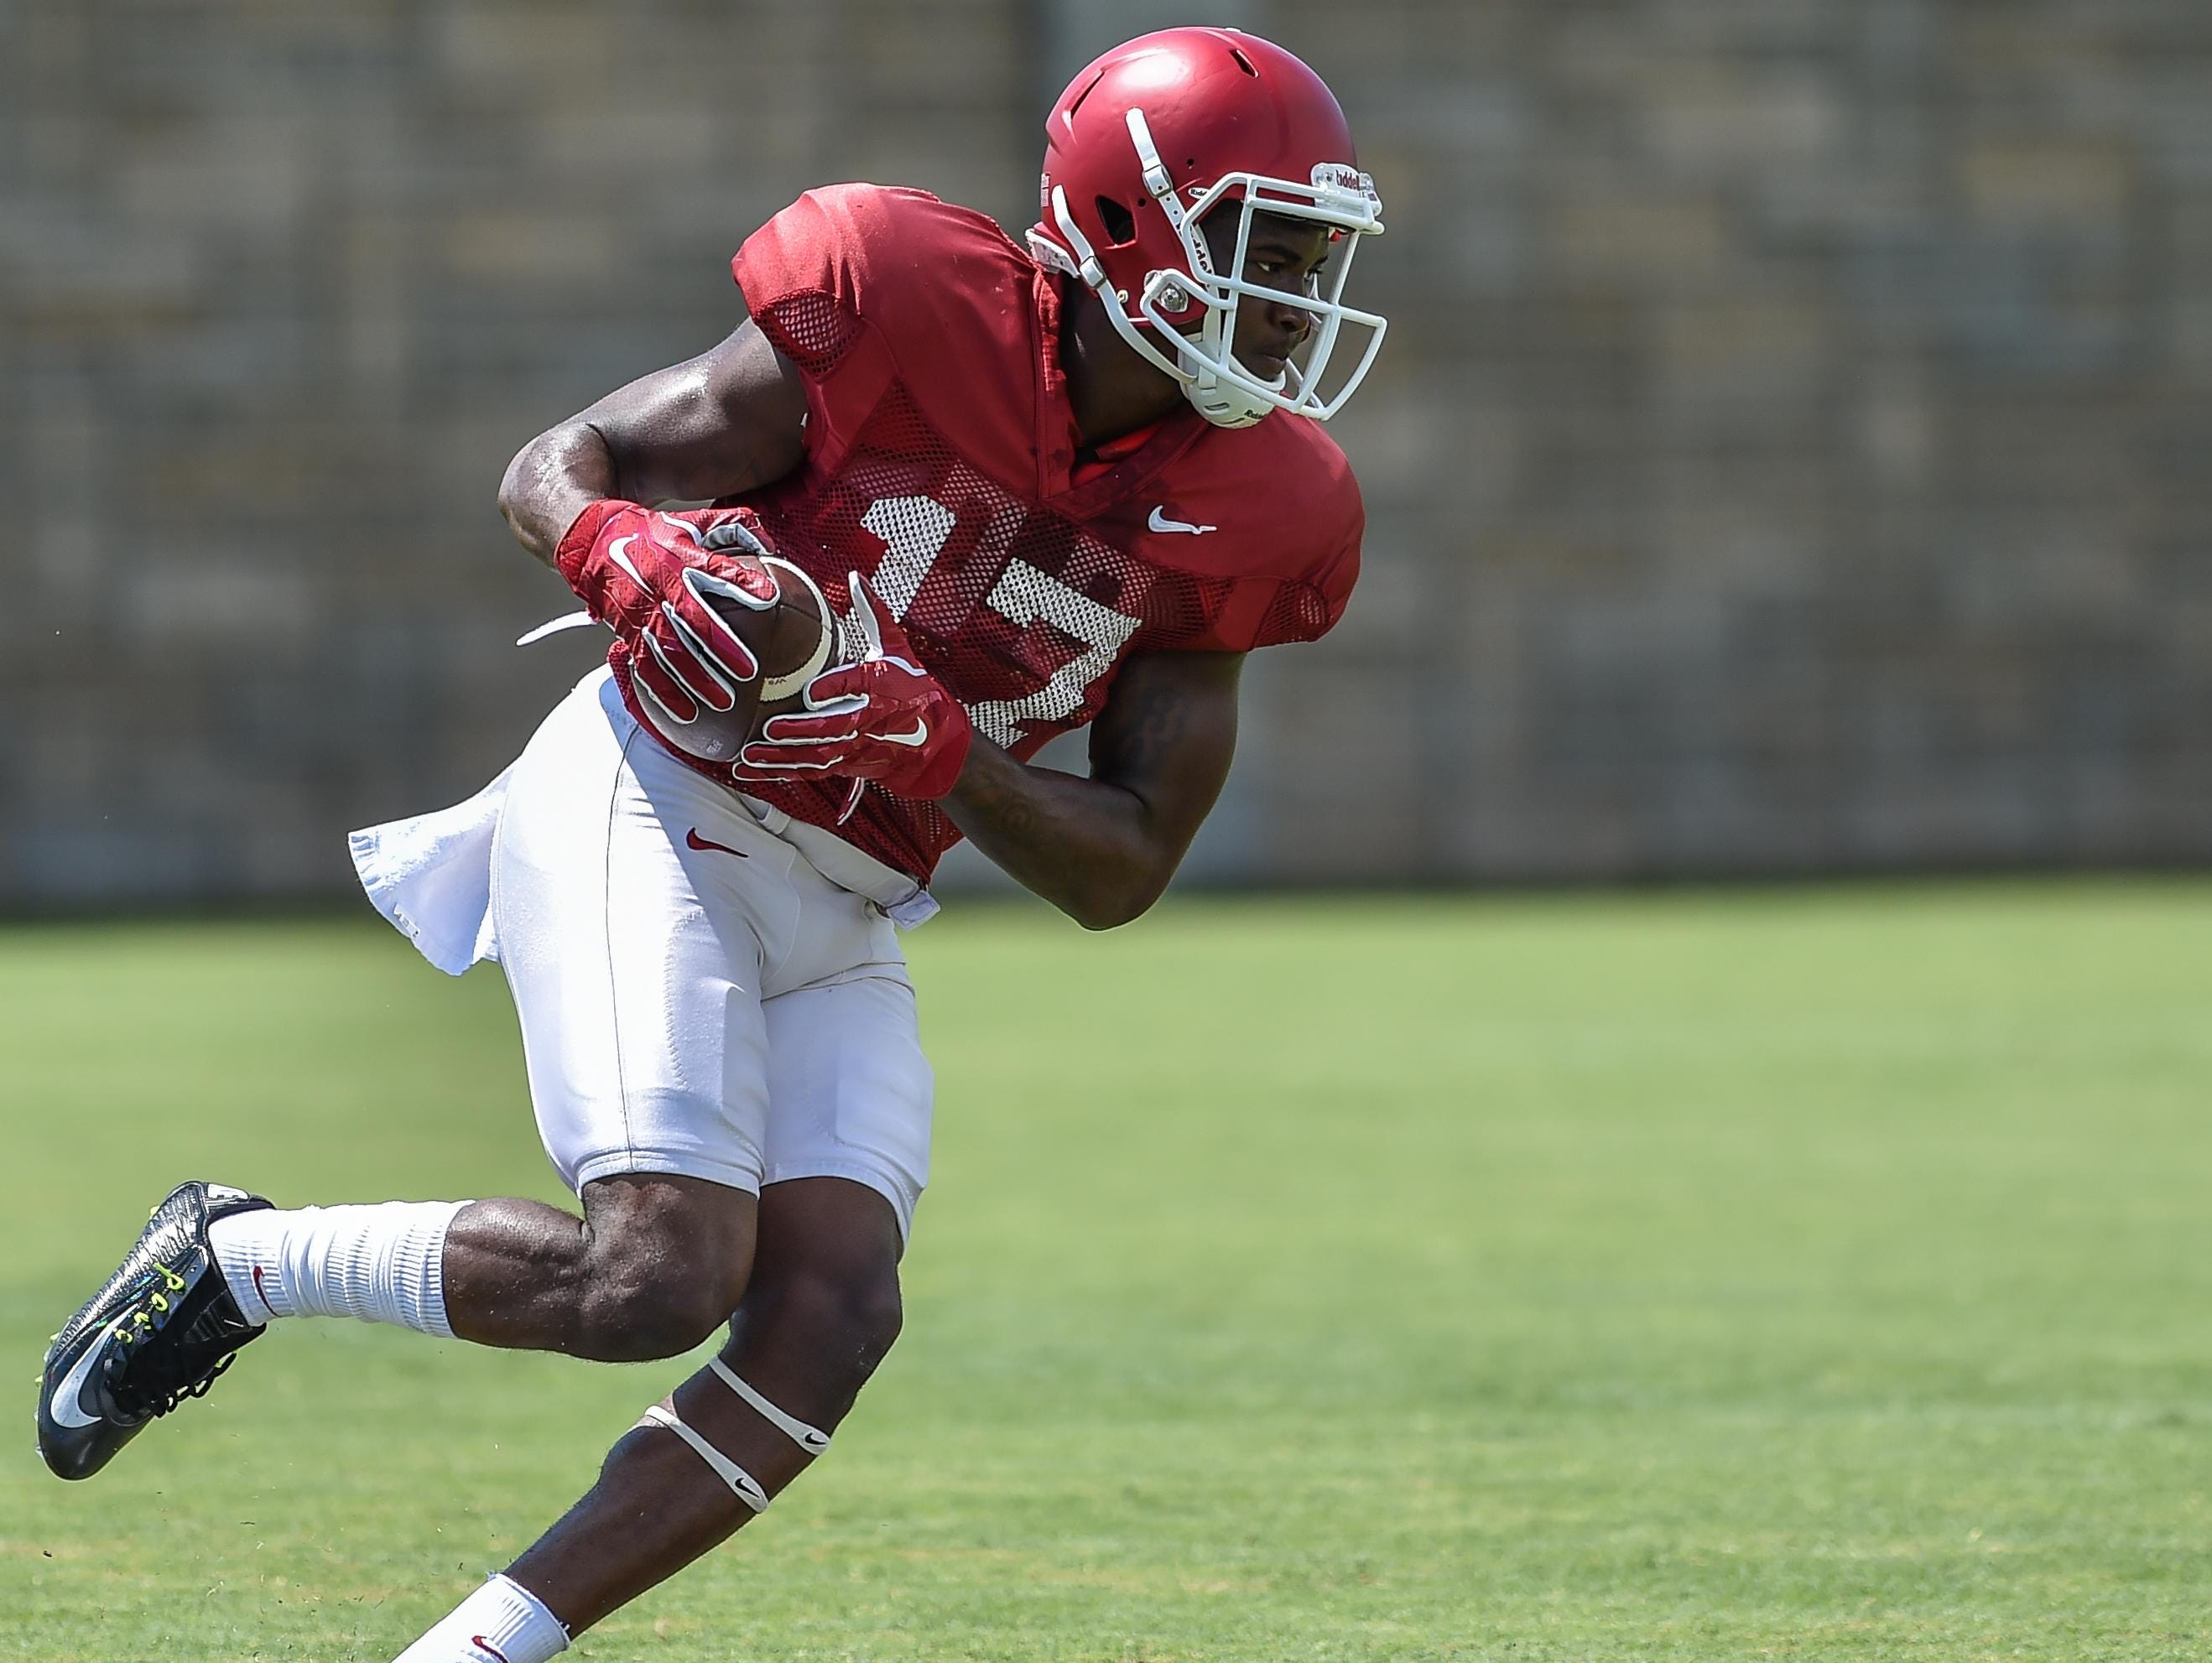 Arkansas' talented redshirt freshman wide receiver JoJo Robinson was officially reinstated to the team on Monday by head coach Bret Bielema.